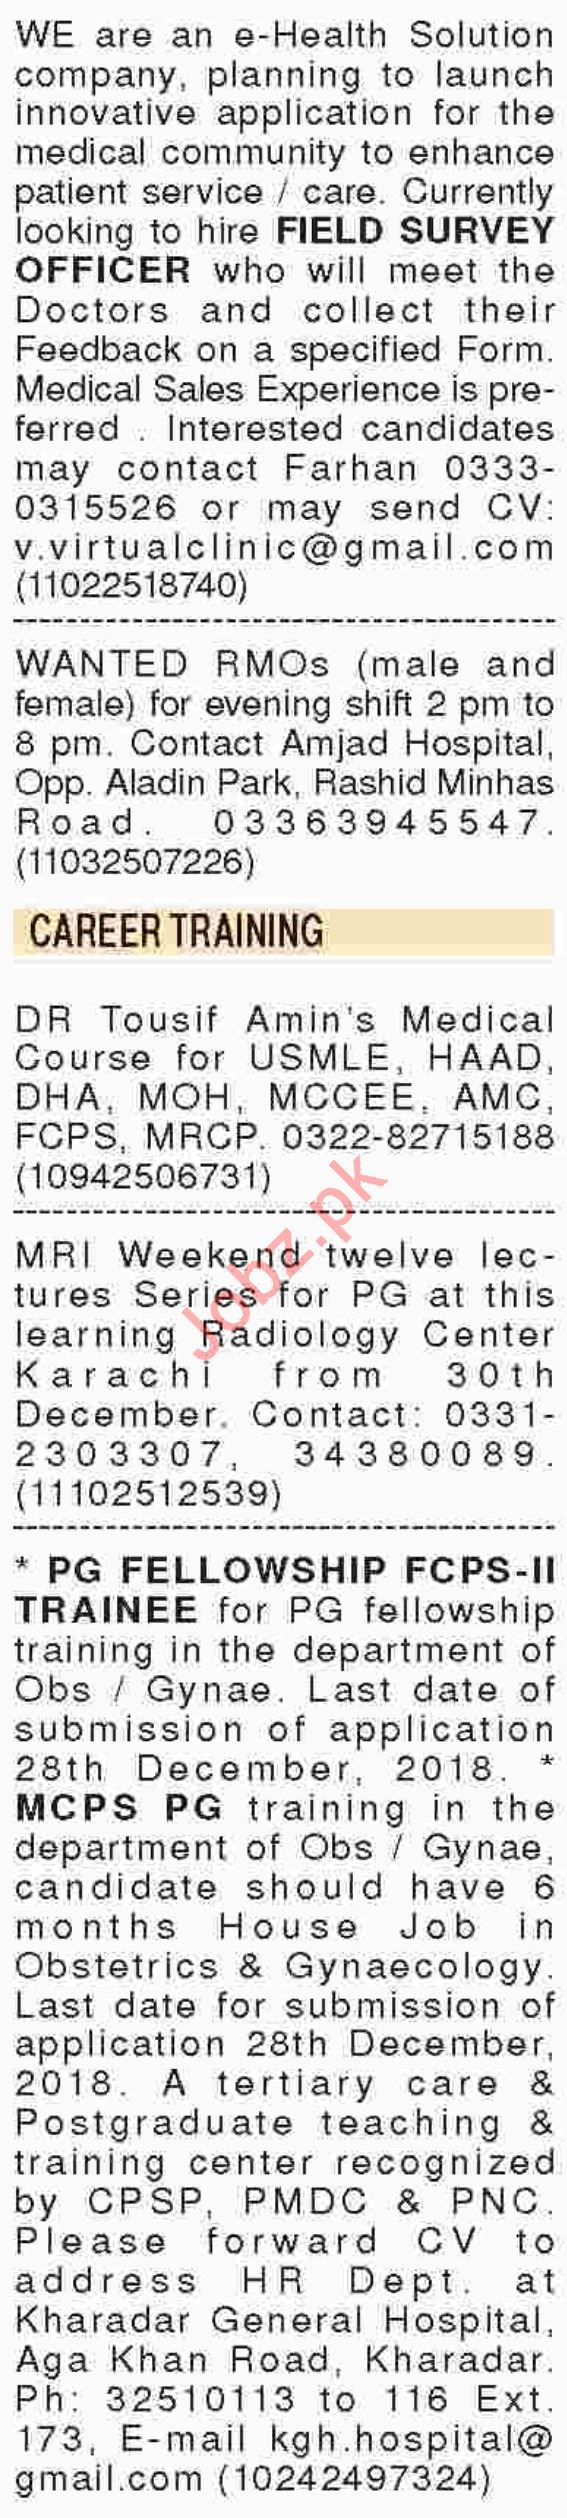 Dawn Sunday Newspaper Medical Classified Ads 23/12/2018